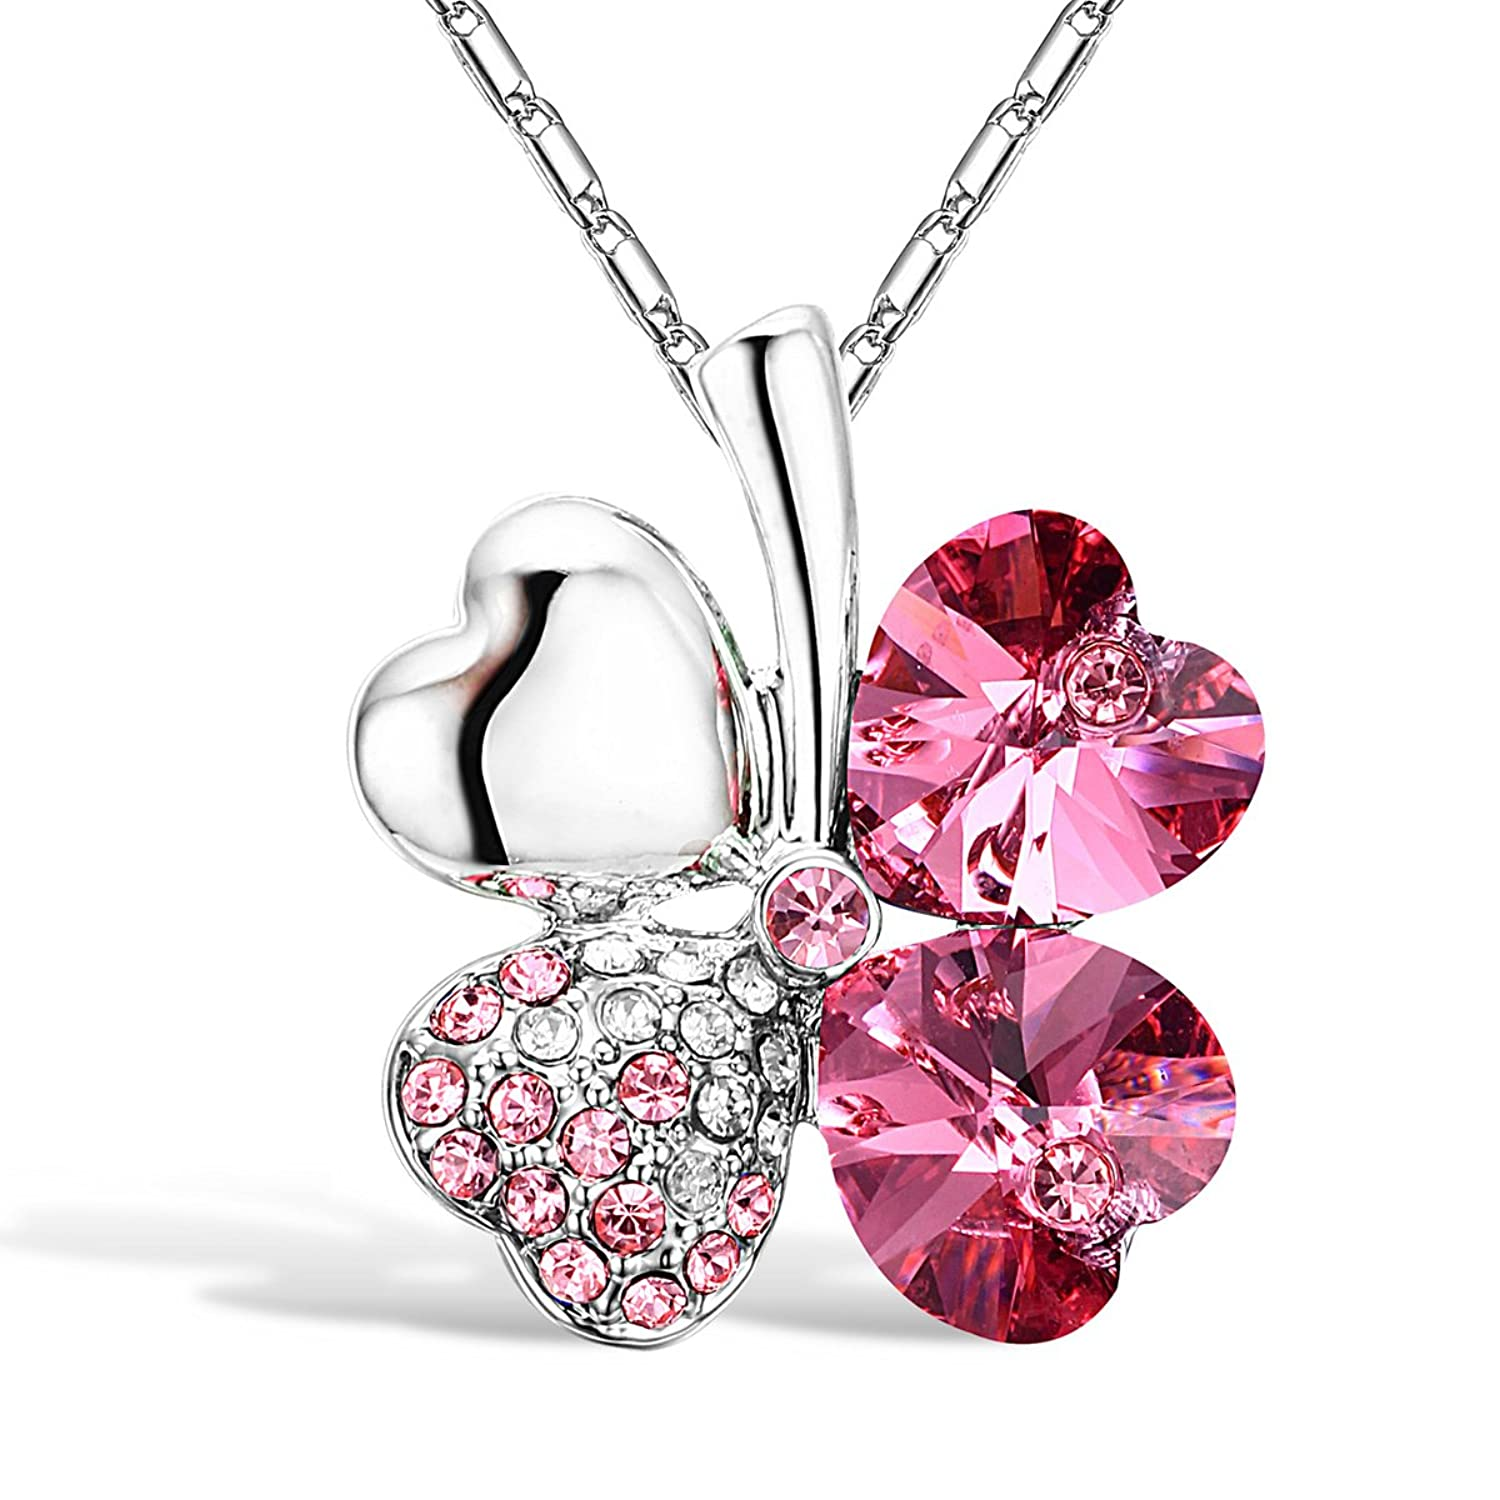 Merdia Four Leaf Clover Heart-shaped Swarovski Elements Crystal Pendant Necklace 16